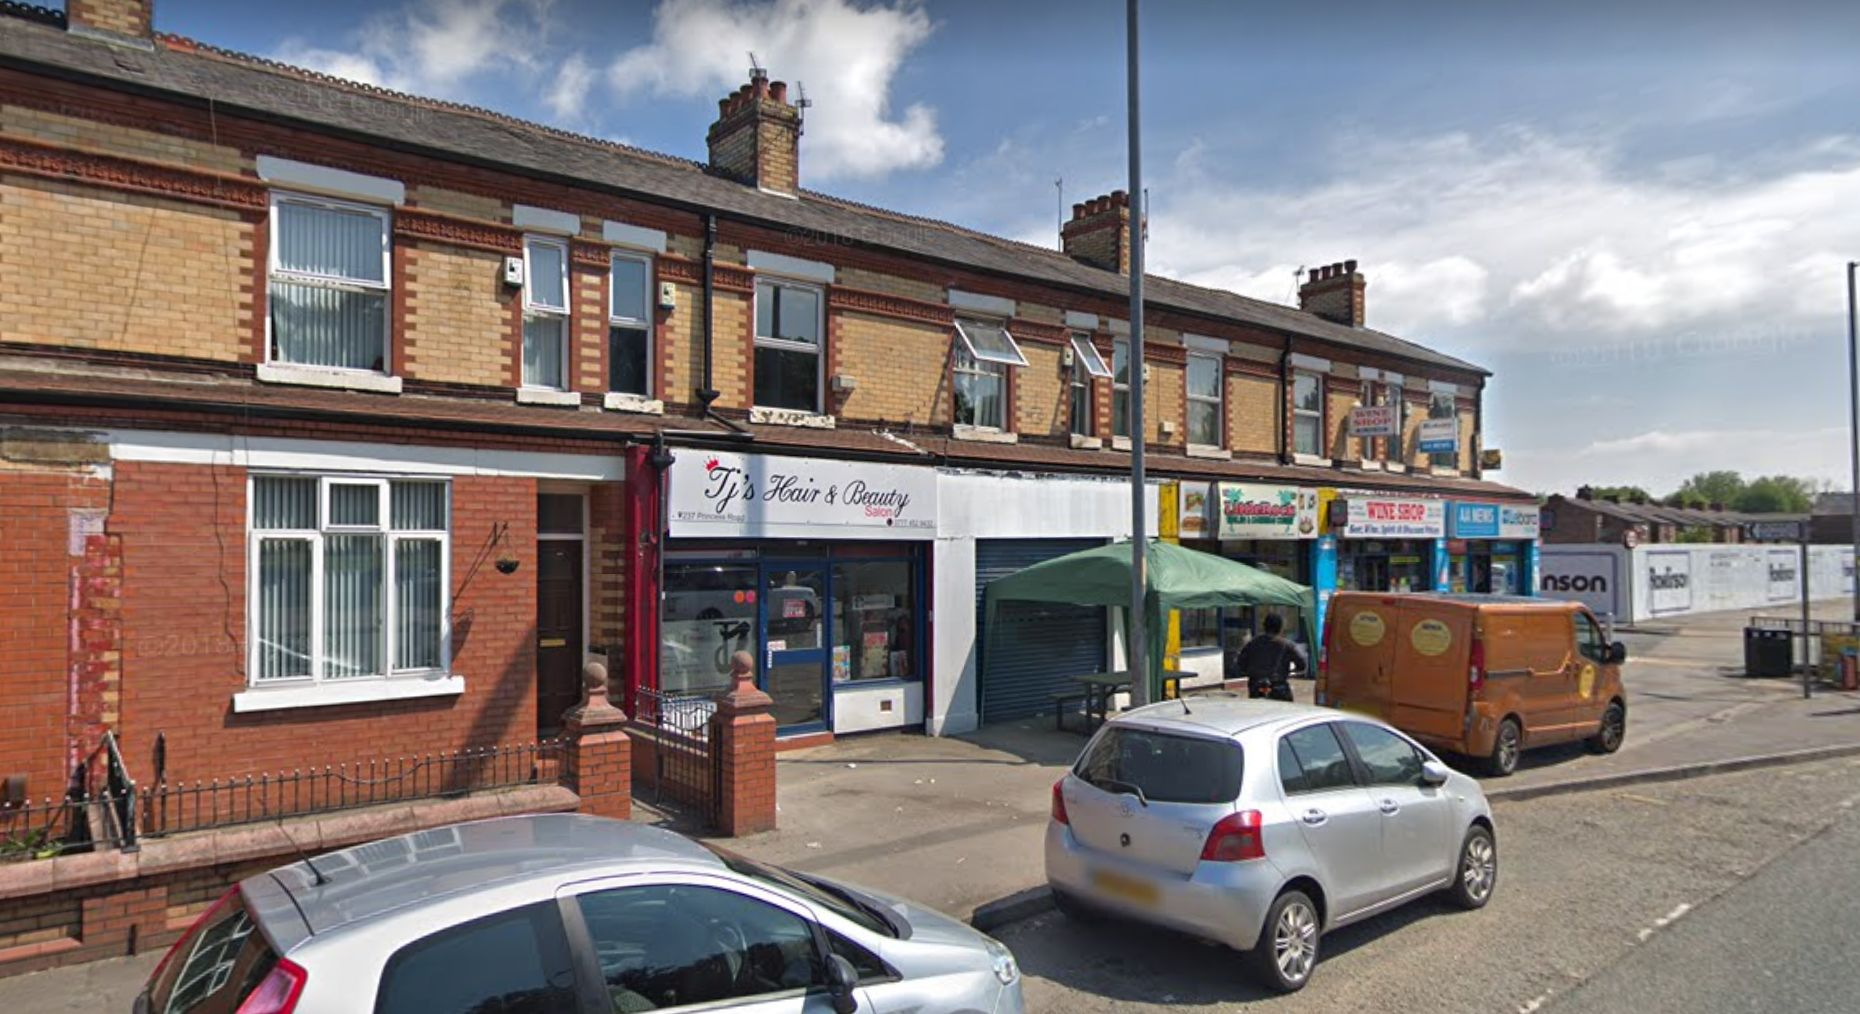 The incident took place at a cafe off Princess Road in Manchester's Moss Side.